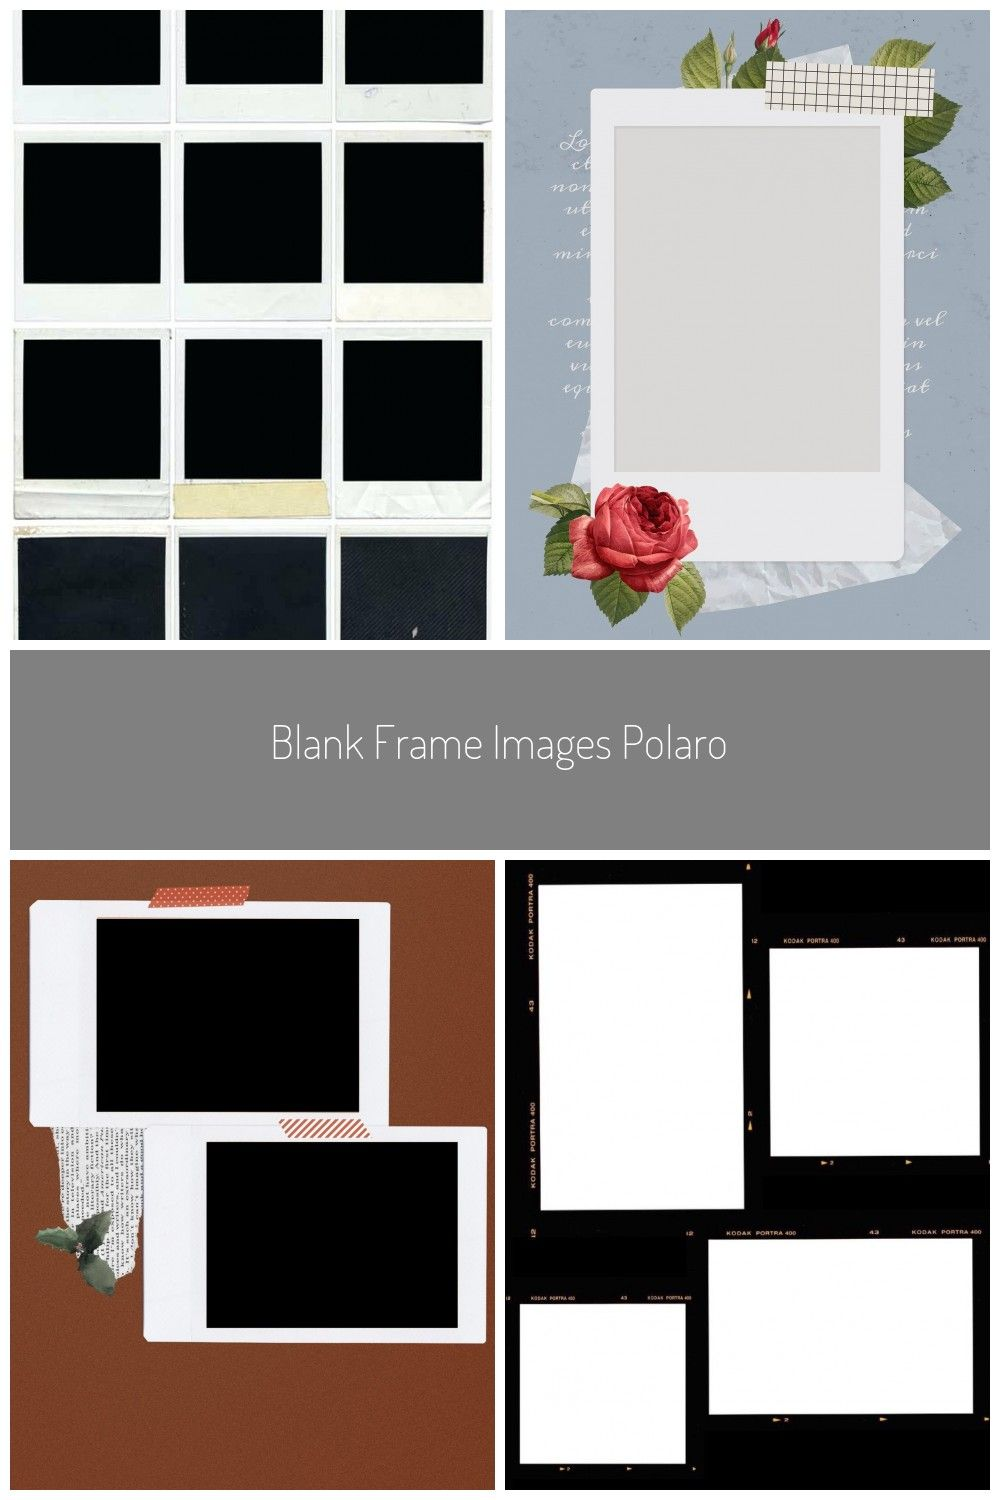 Blank Frame Images Polaroid Collage Template Free Photo Hi Res Frames Polaroid Template Collage Template Image Frame Free Photos